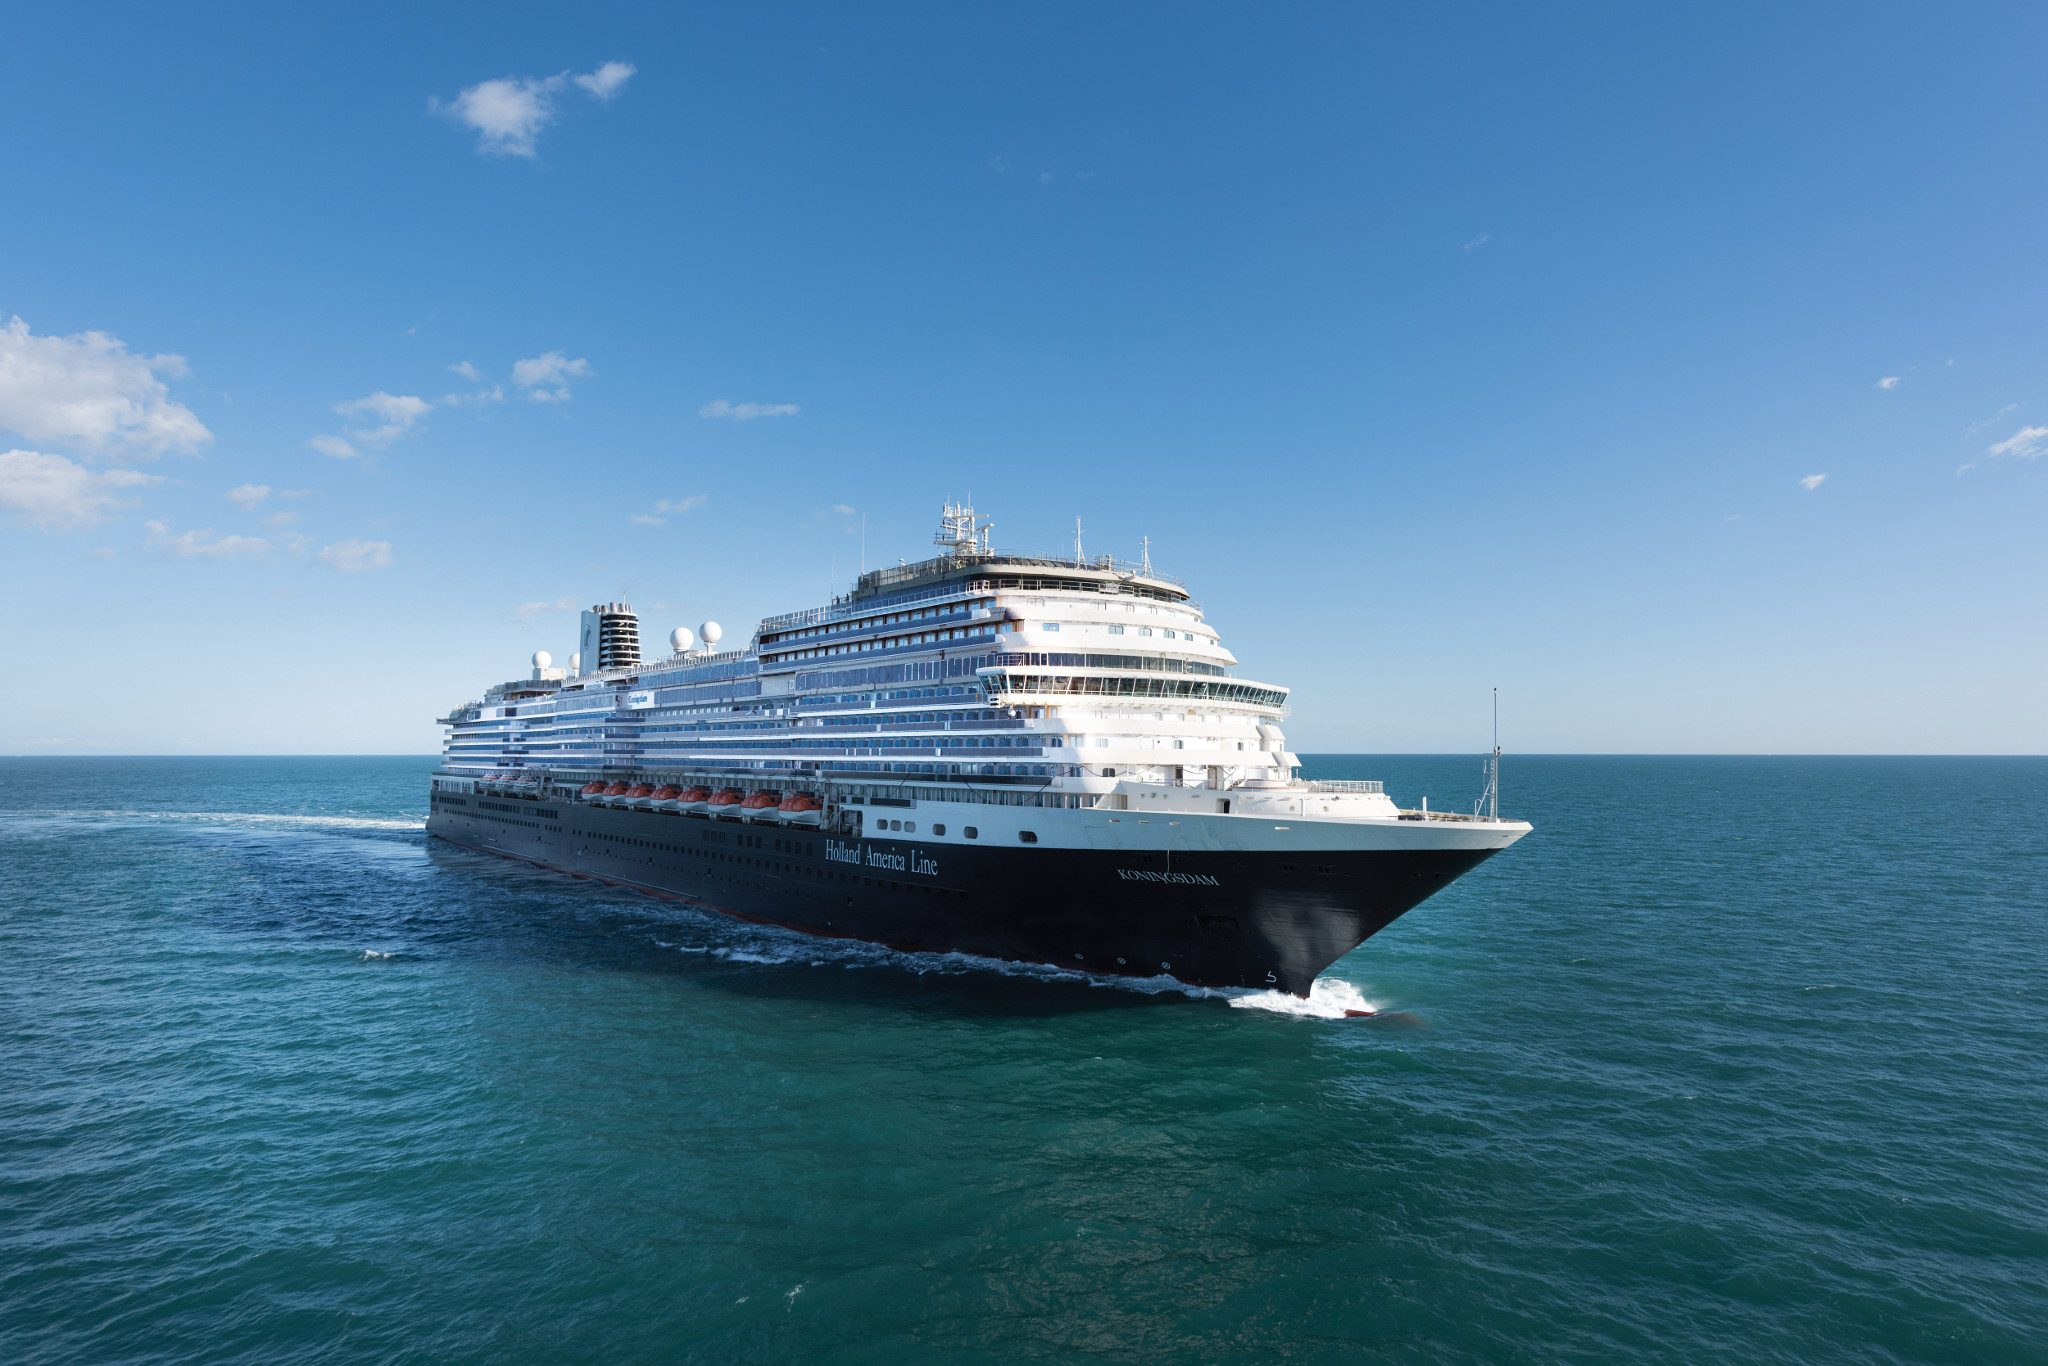 Holland America Line Takes Delivery of ms Koningsdam from Fincantieri Shipyard